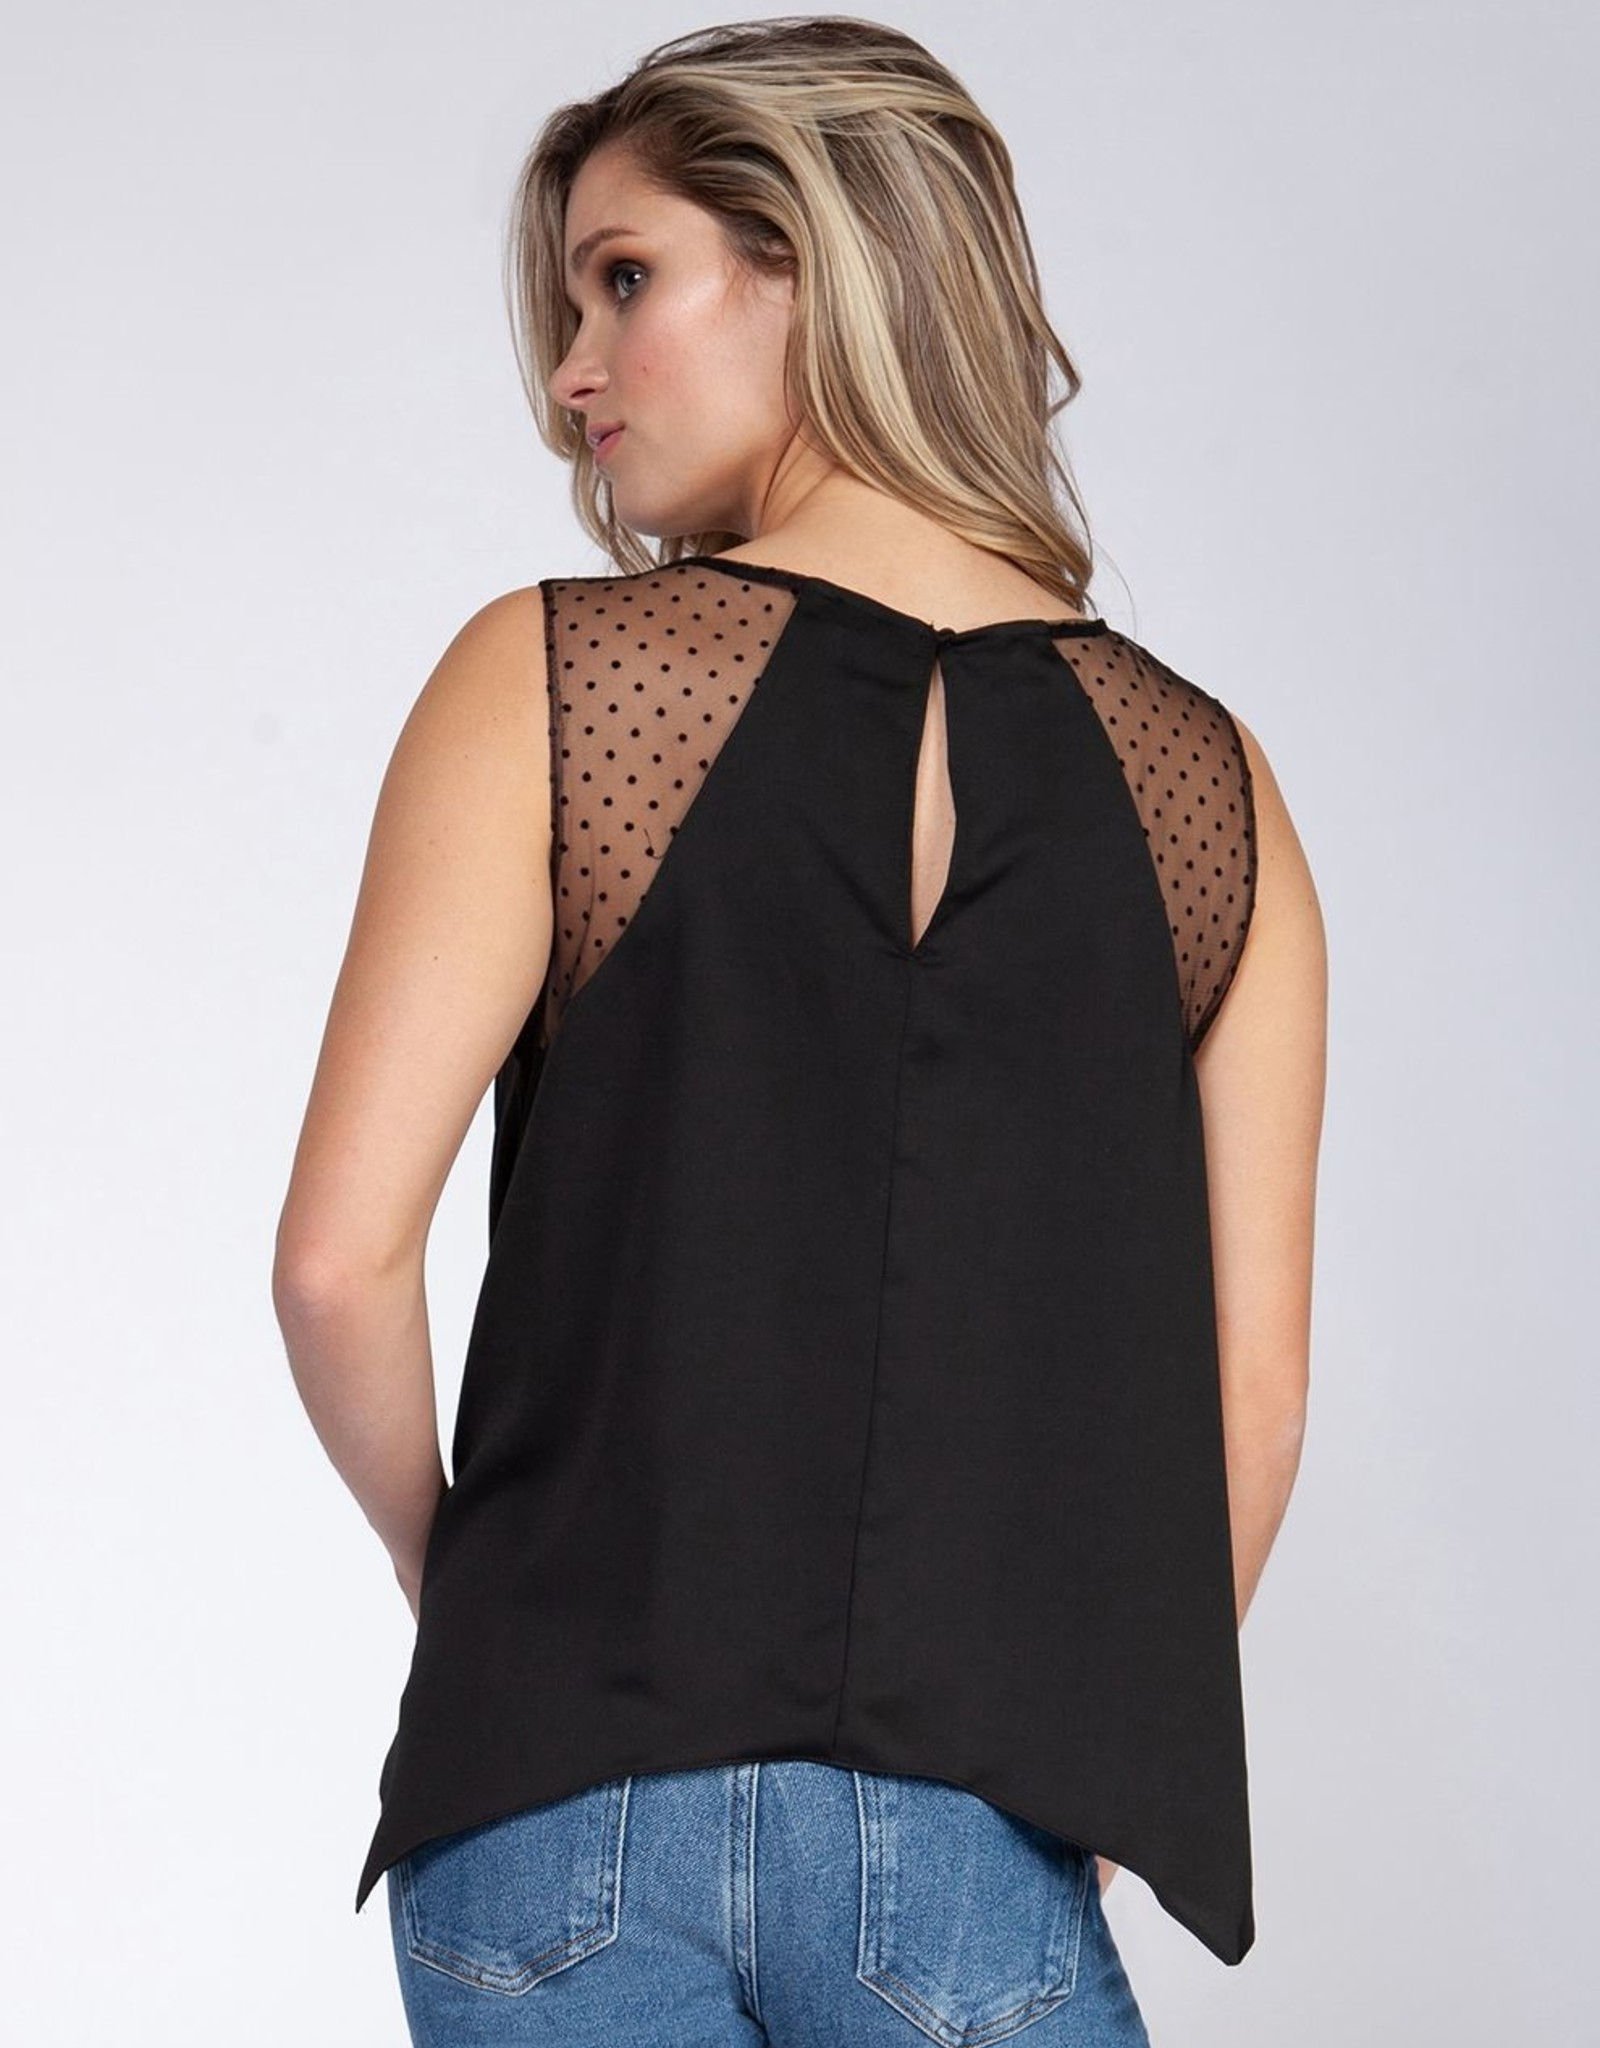 Black Tape Caviar Top